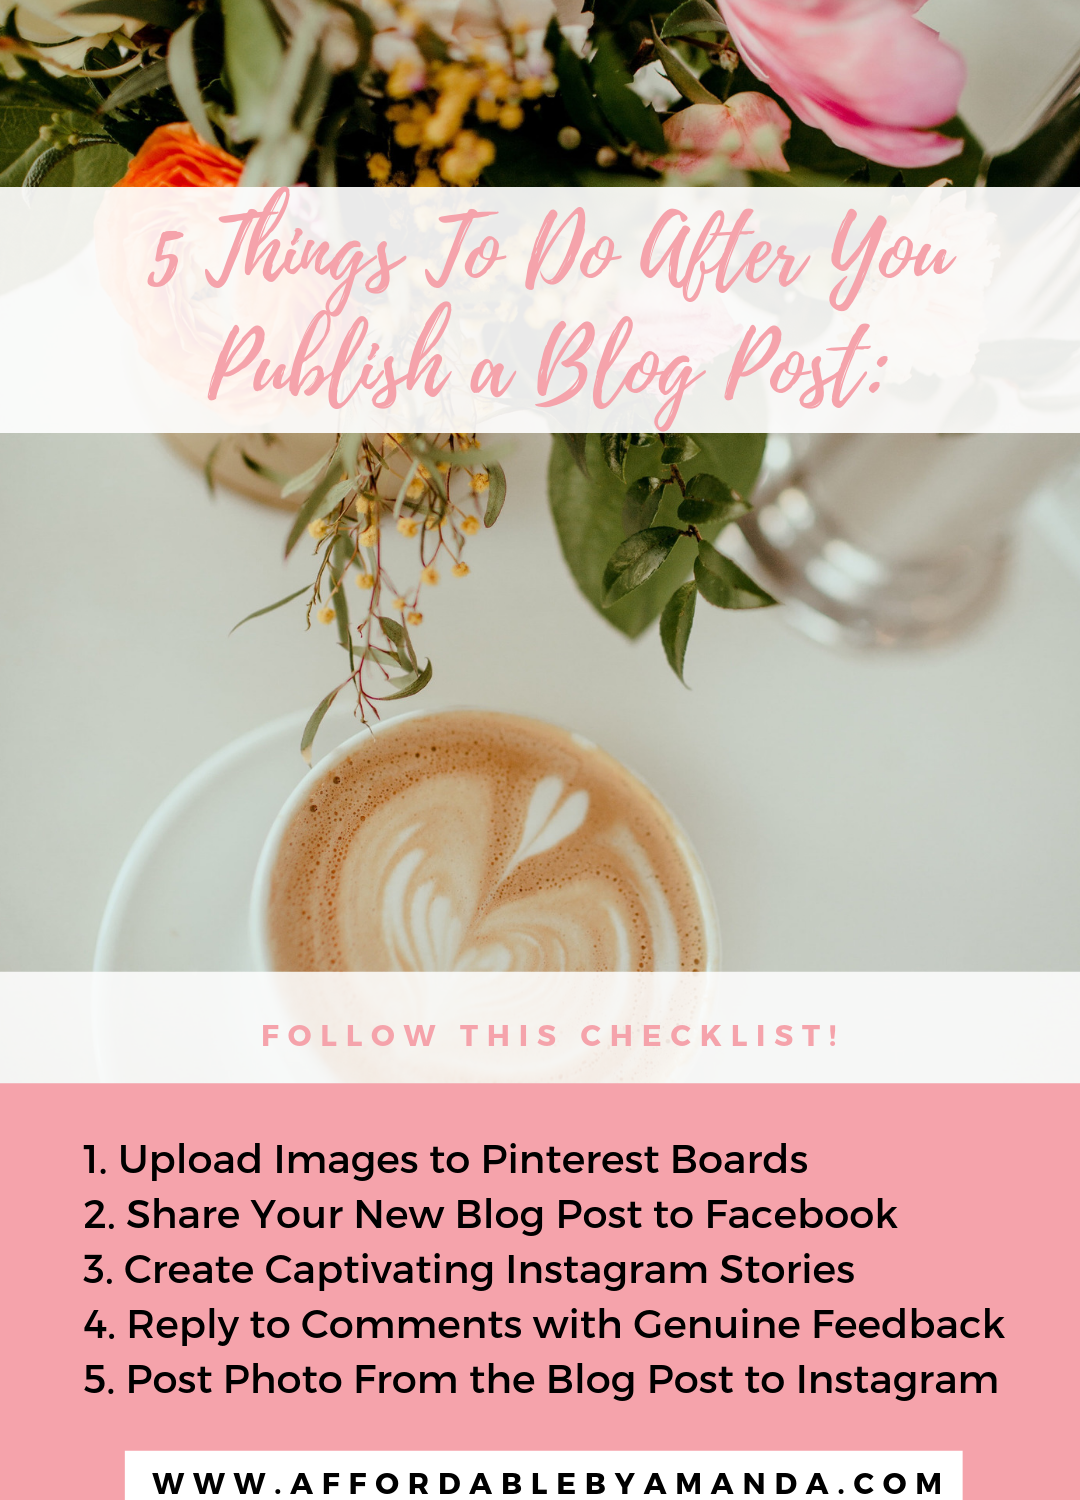 5 Things To Do After Publishing a New Blog Post : Amanda Burrows New Blog Post